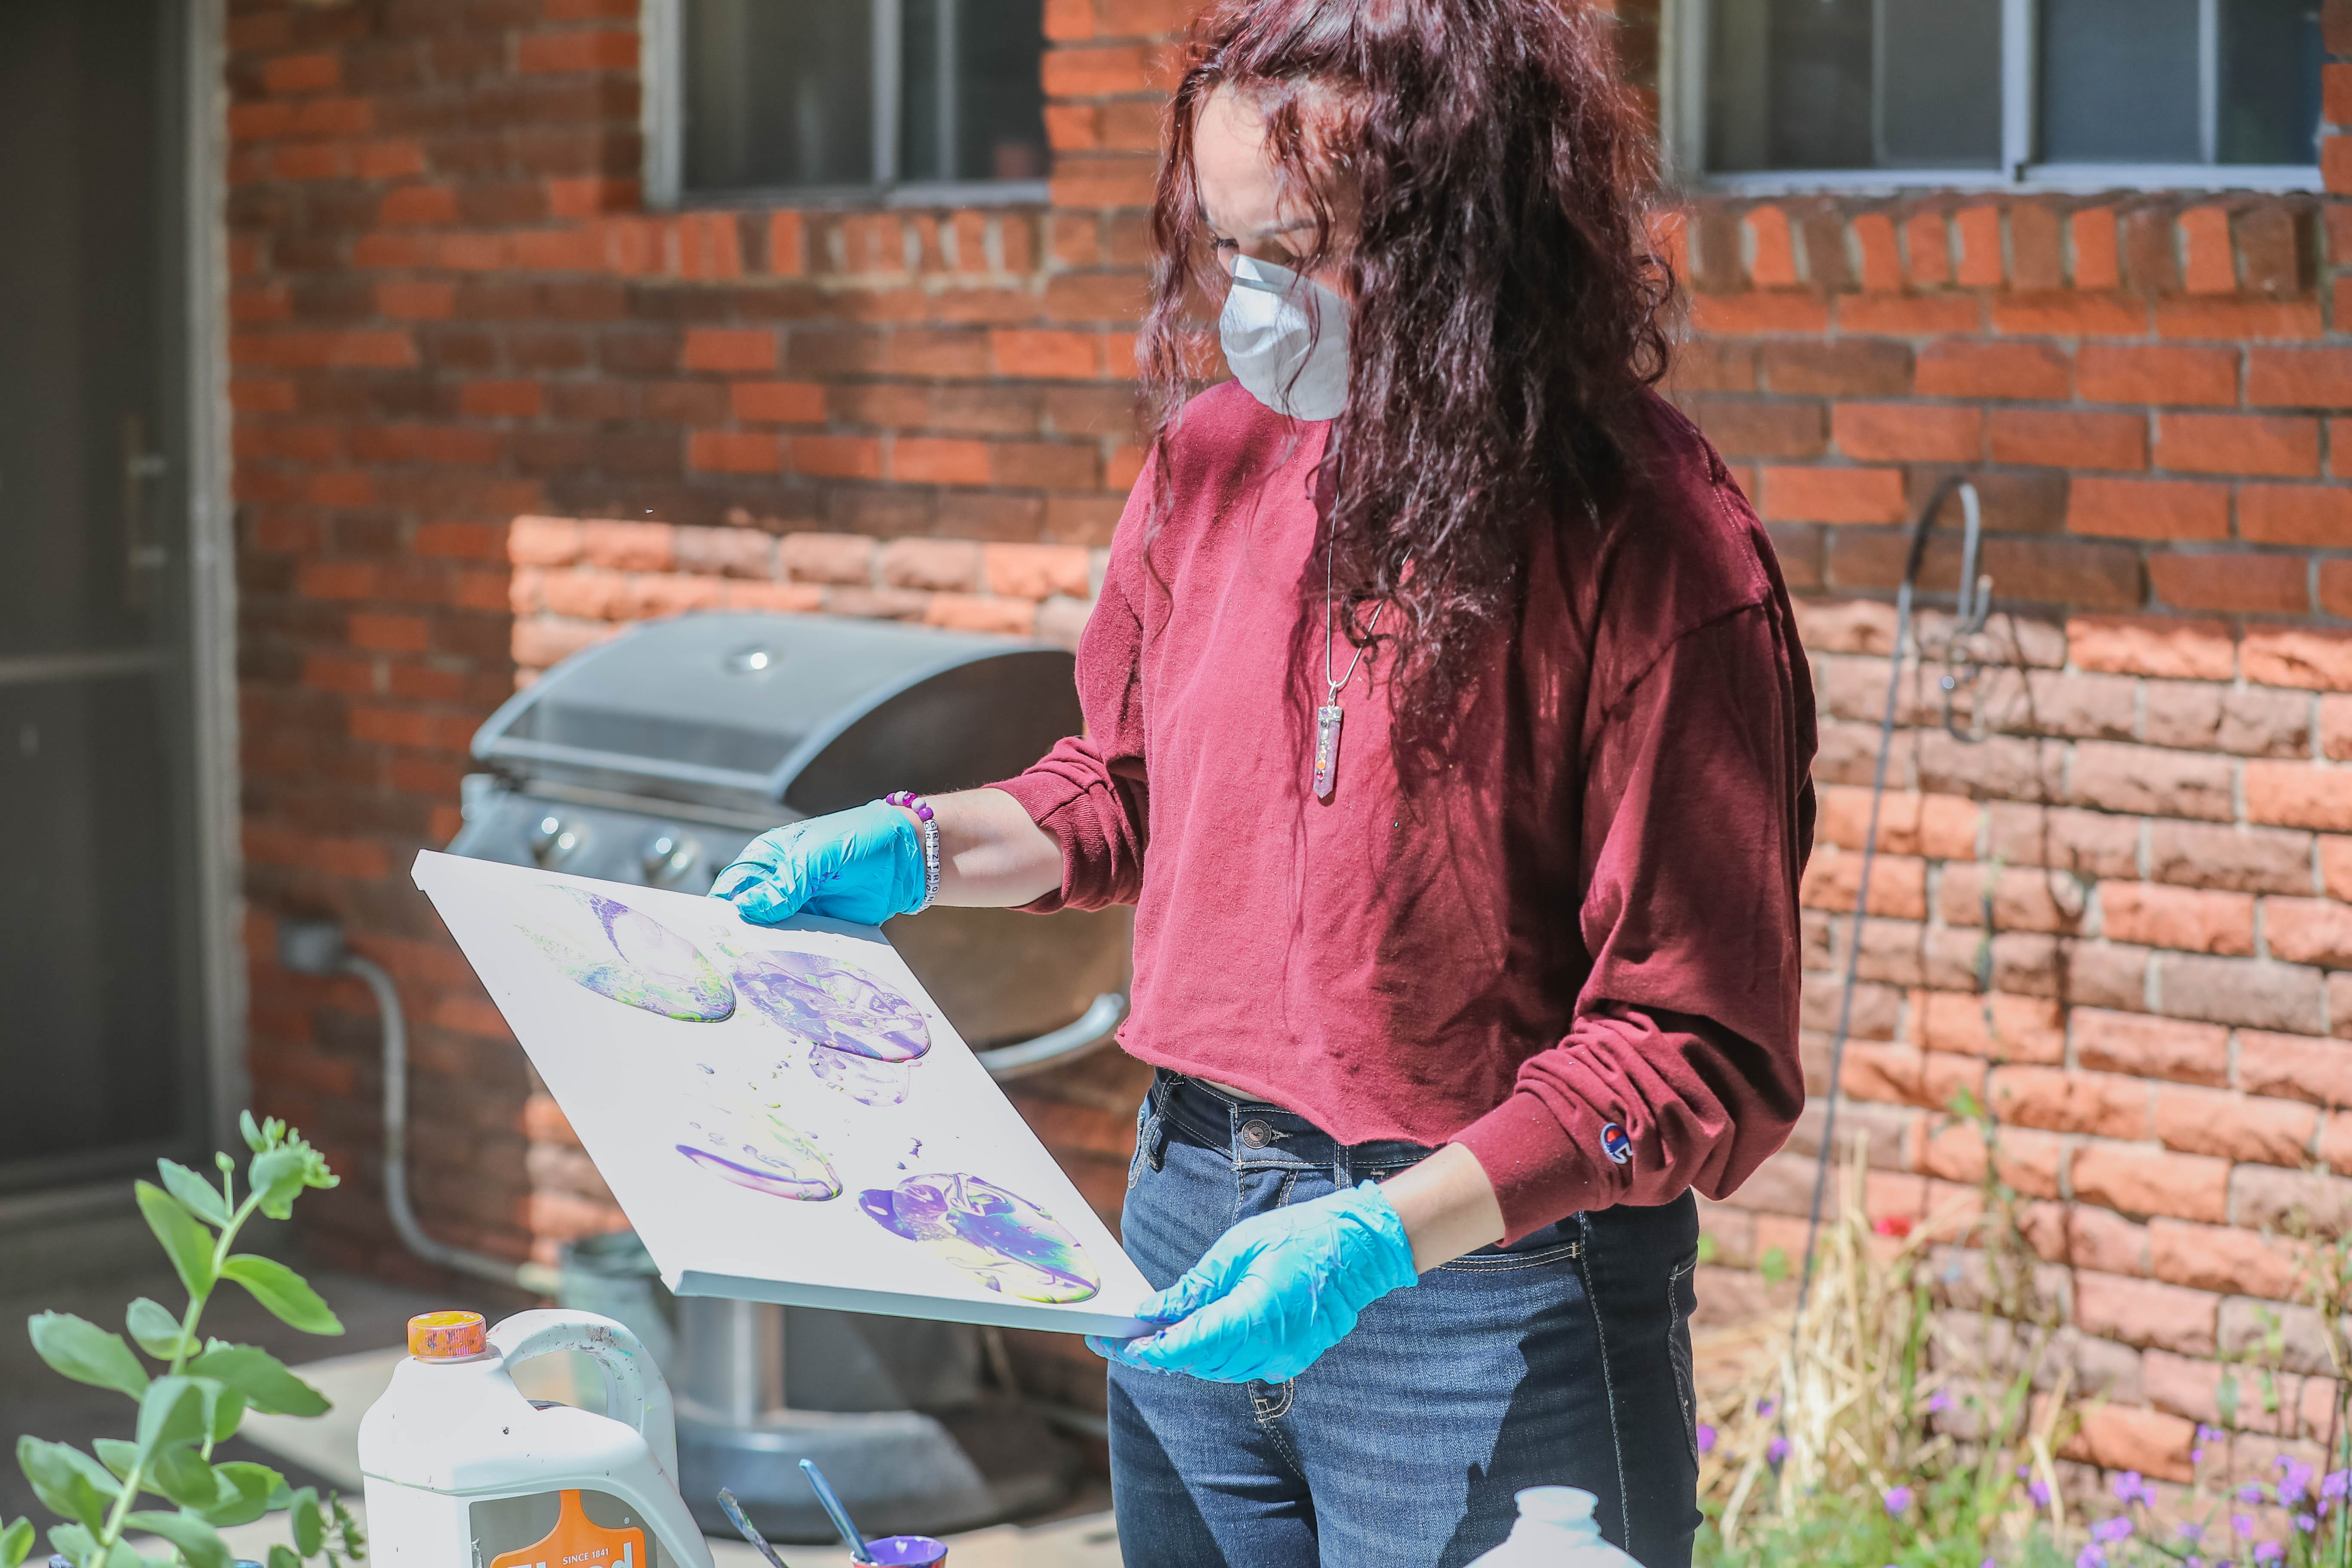 Merrell Gomez paints in her backyard while in quarantine in Las Cruces on Thursday, April 9, 2020. Gomez would have been working at Bath and Bodyworks.